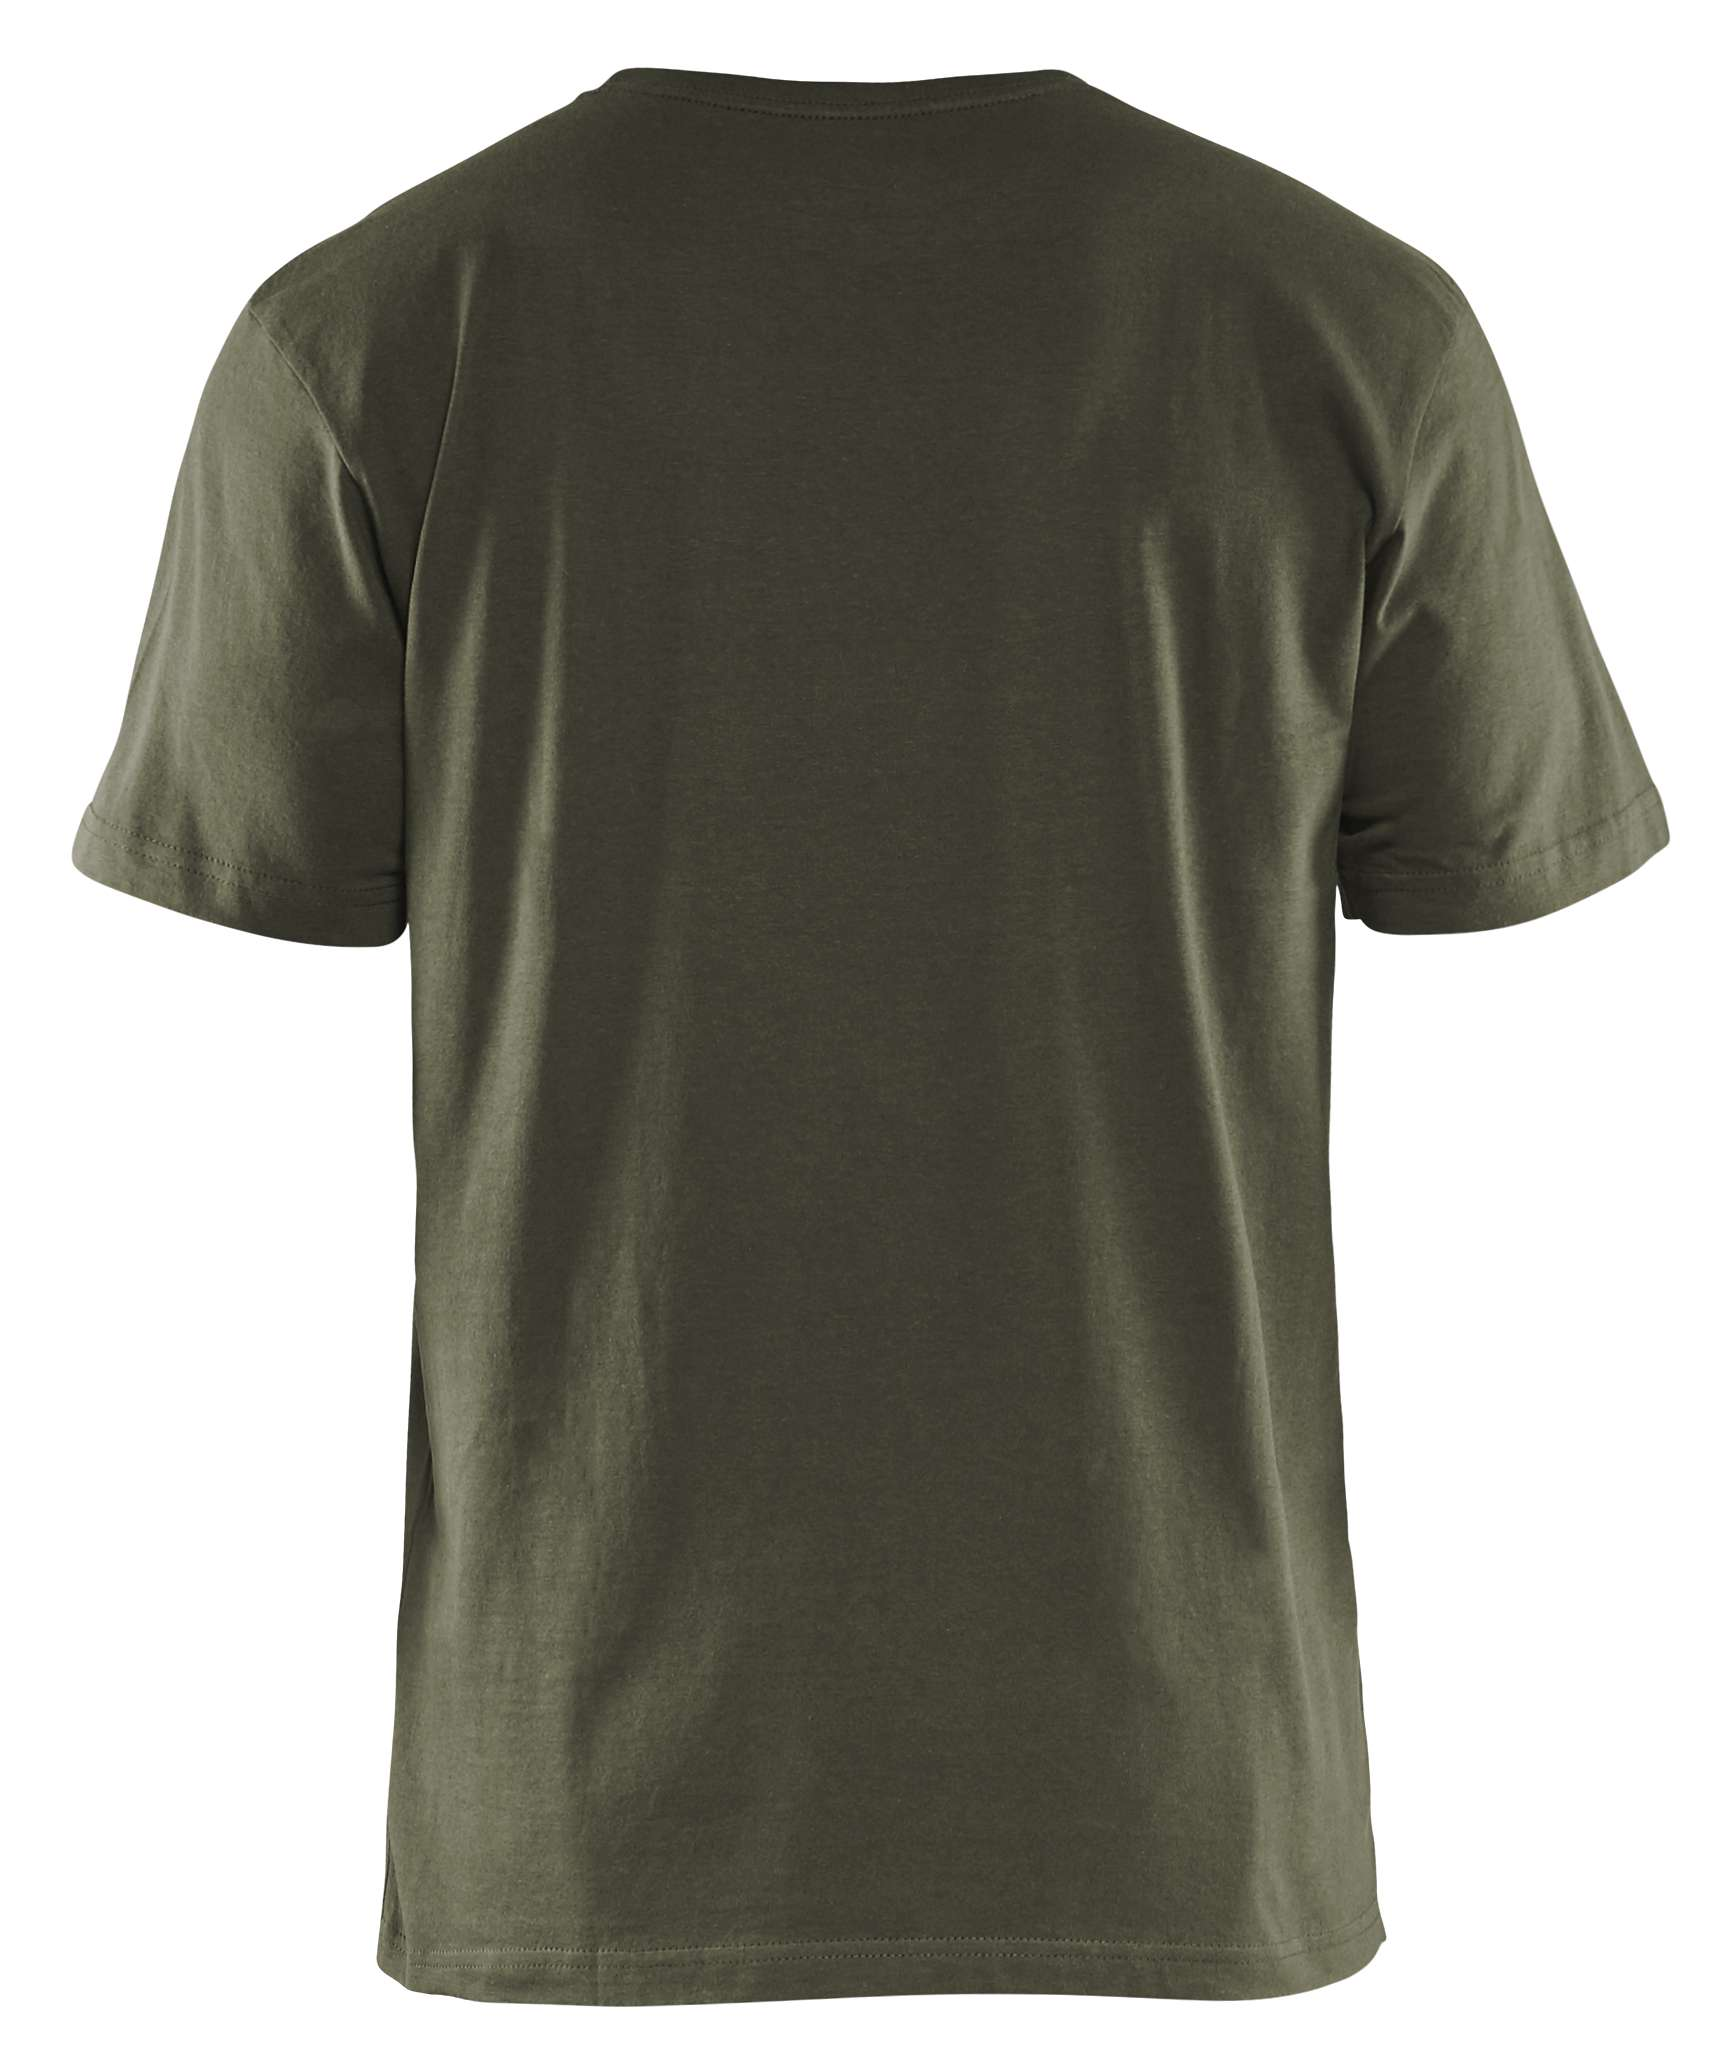 Blaklader T-shirts 33251042 5-pack army groen(4600)